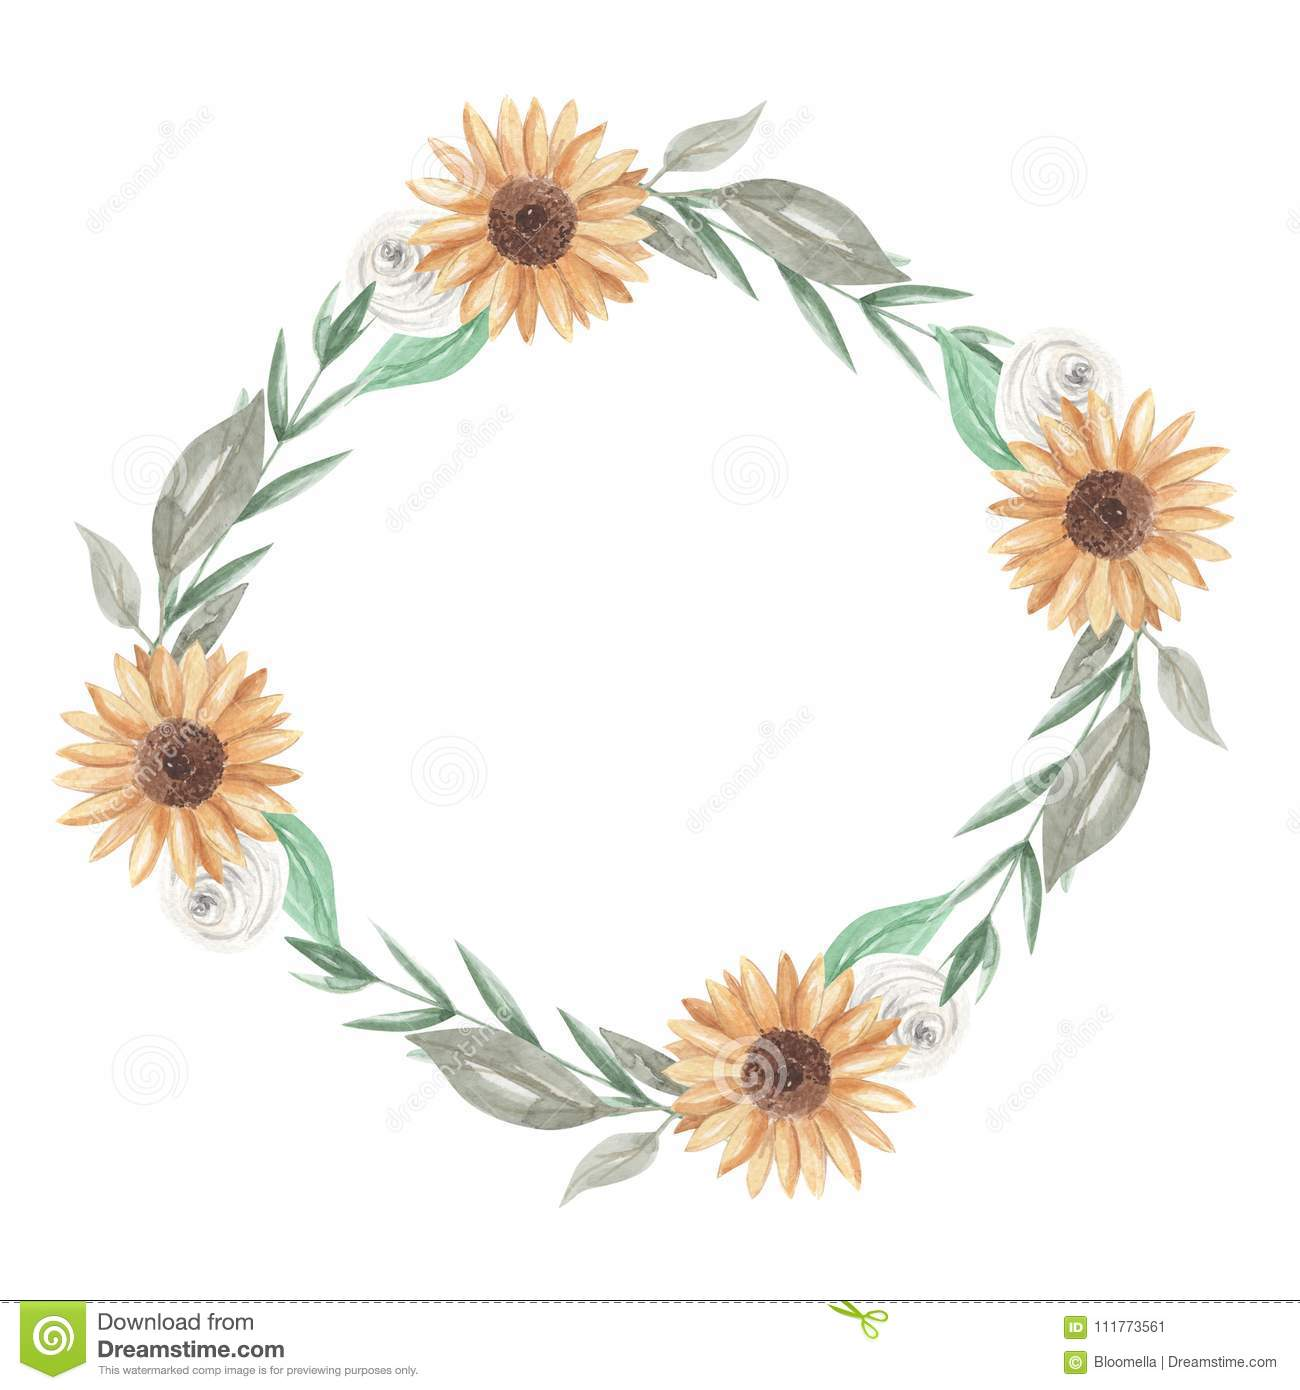 Sunflowers Watercolor Wreath Garland Clipart Flowers White Roses Stock Illustration Illustration Of Delicate Eucalyptus 111773561